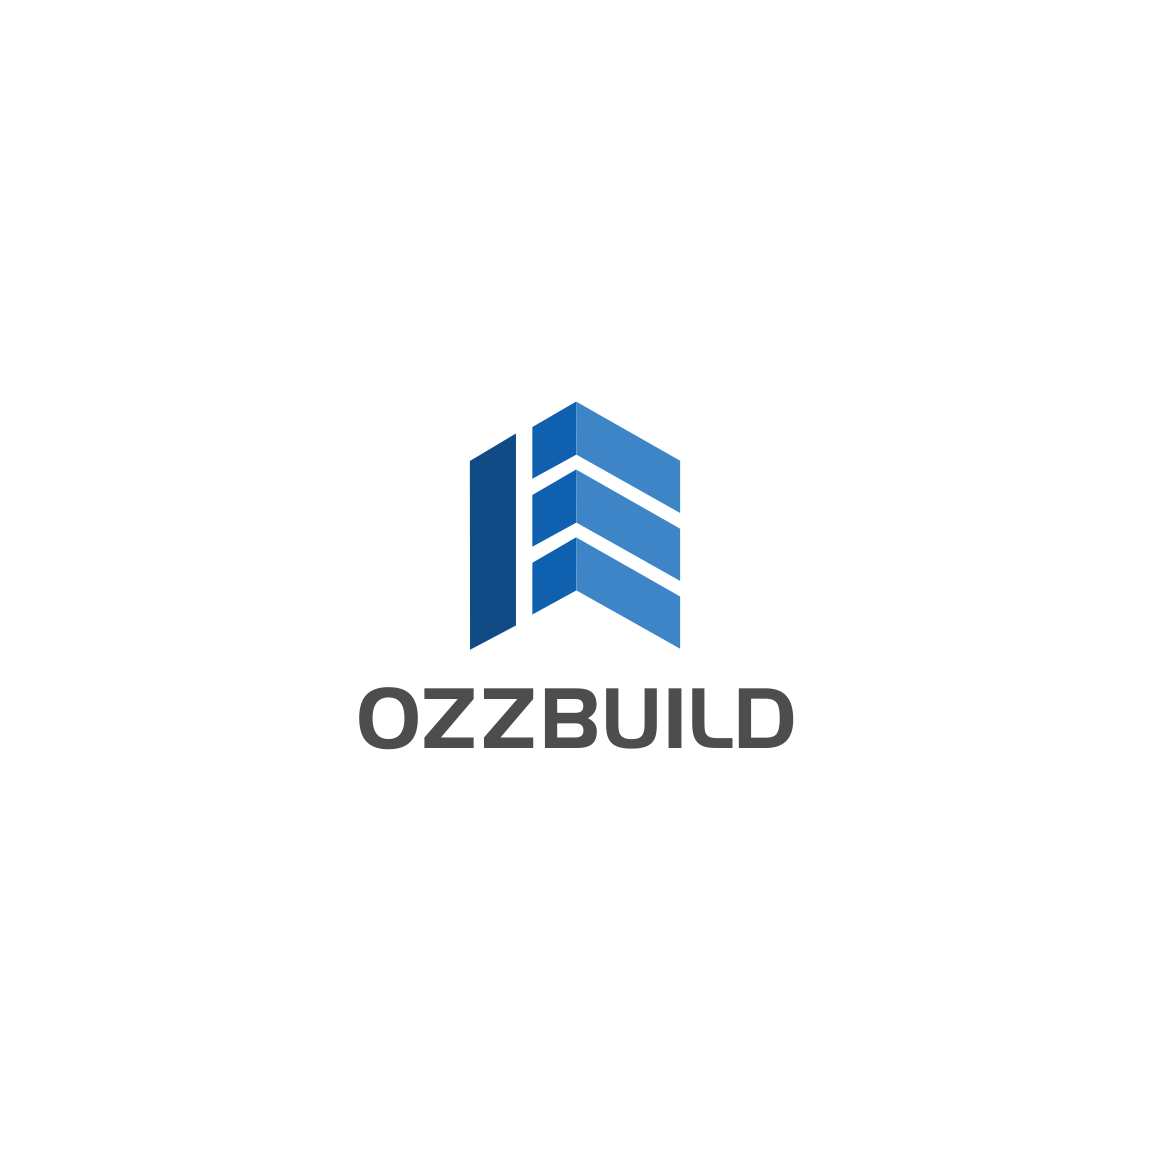 Serious modern logo design for ozzbuild by susanto83 Business logo design company